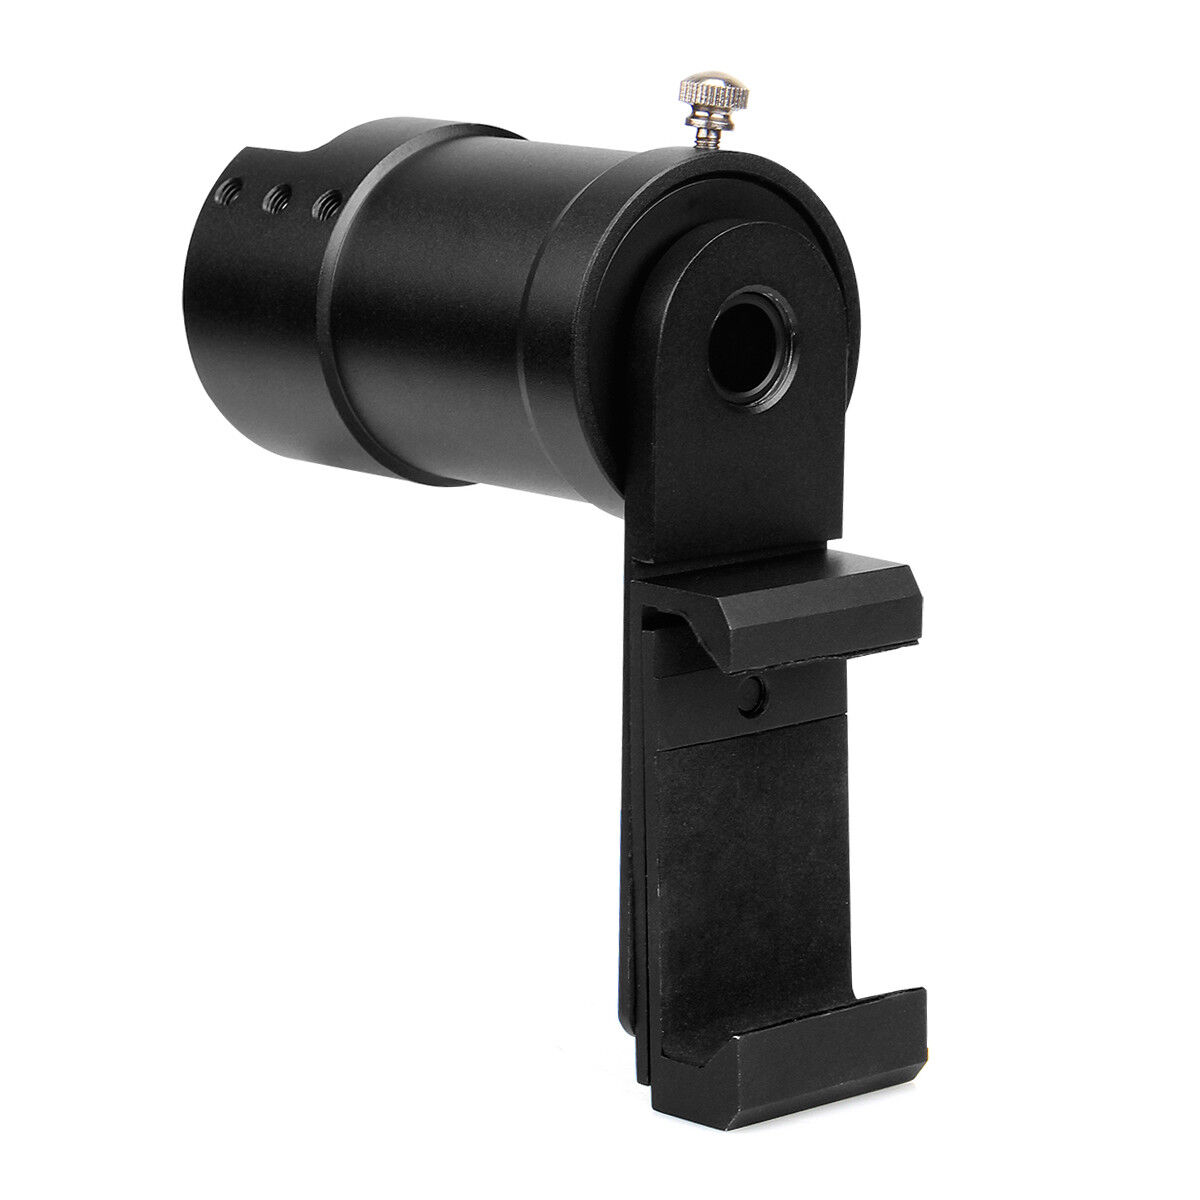 2pcs Rifle Rifle 2pcs Scope Smartphone Mount System Adapter for Moblie Phone Camera Mount e529f7